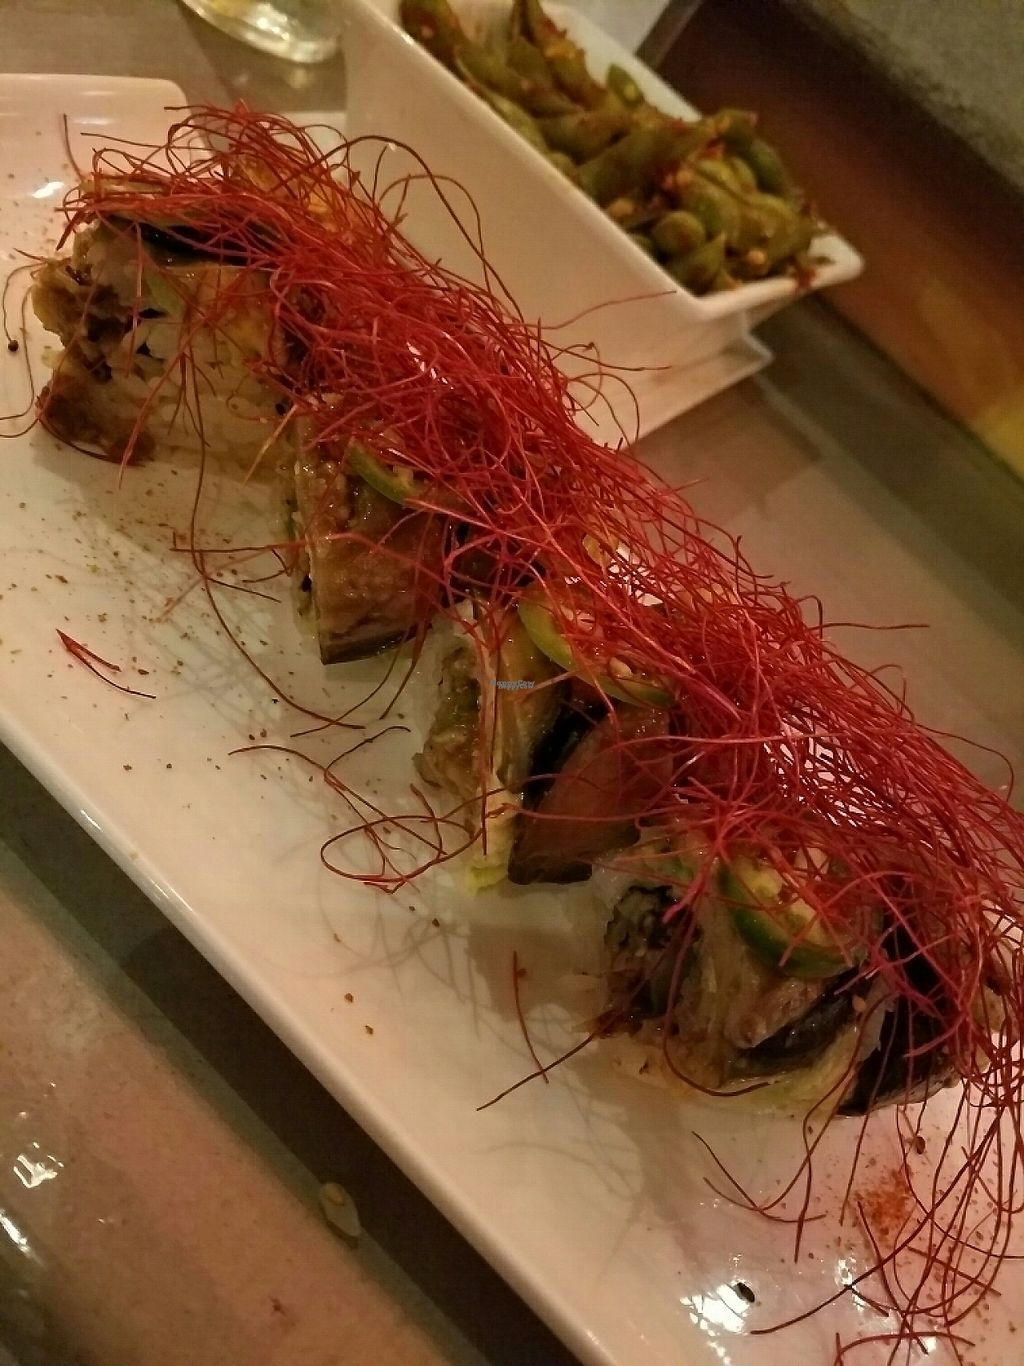 """Photo of Lou's Sushi  by <a href=""""/members/profile/FrejaNelson"""">FrejaNelson</a> <br/>vegan firecracker roll <br/> December 15, 2016  - <a href='/contact/abuse/image/80553/201538'>Report</a>"""